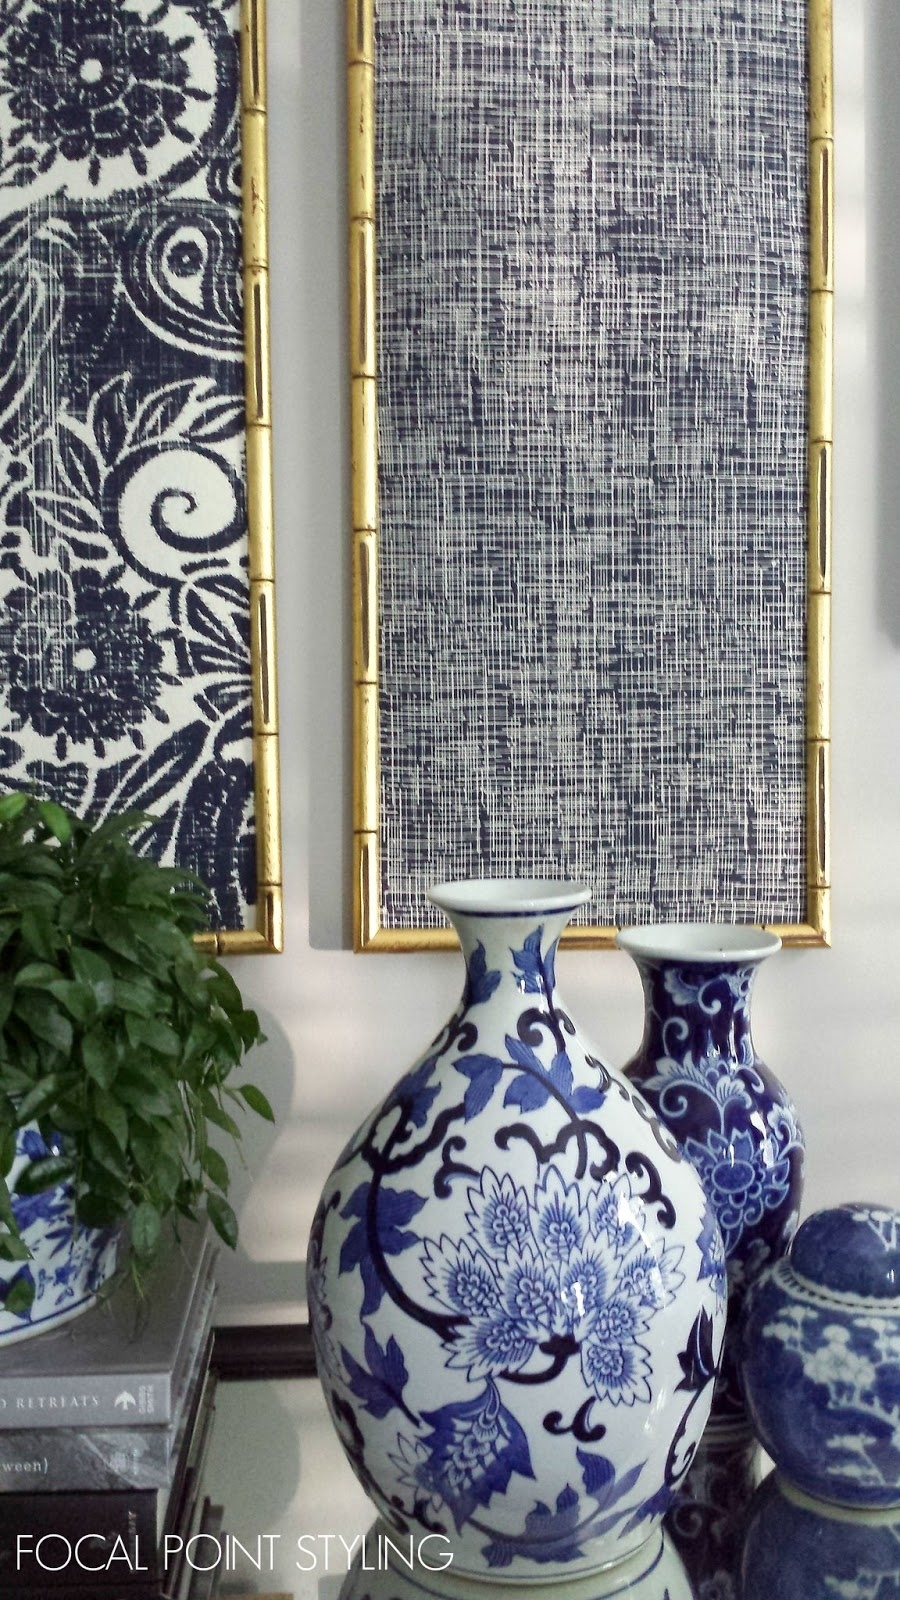 Focal Point Styling: Diy Indigo Wall Art With Framed Fabric Within Best And Newest Blue Fabric Wall Art (View 6 of 15)